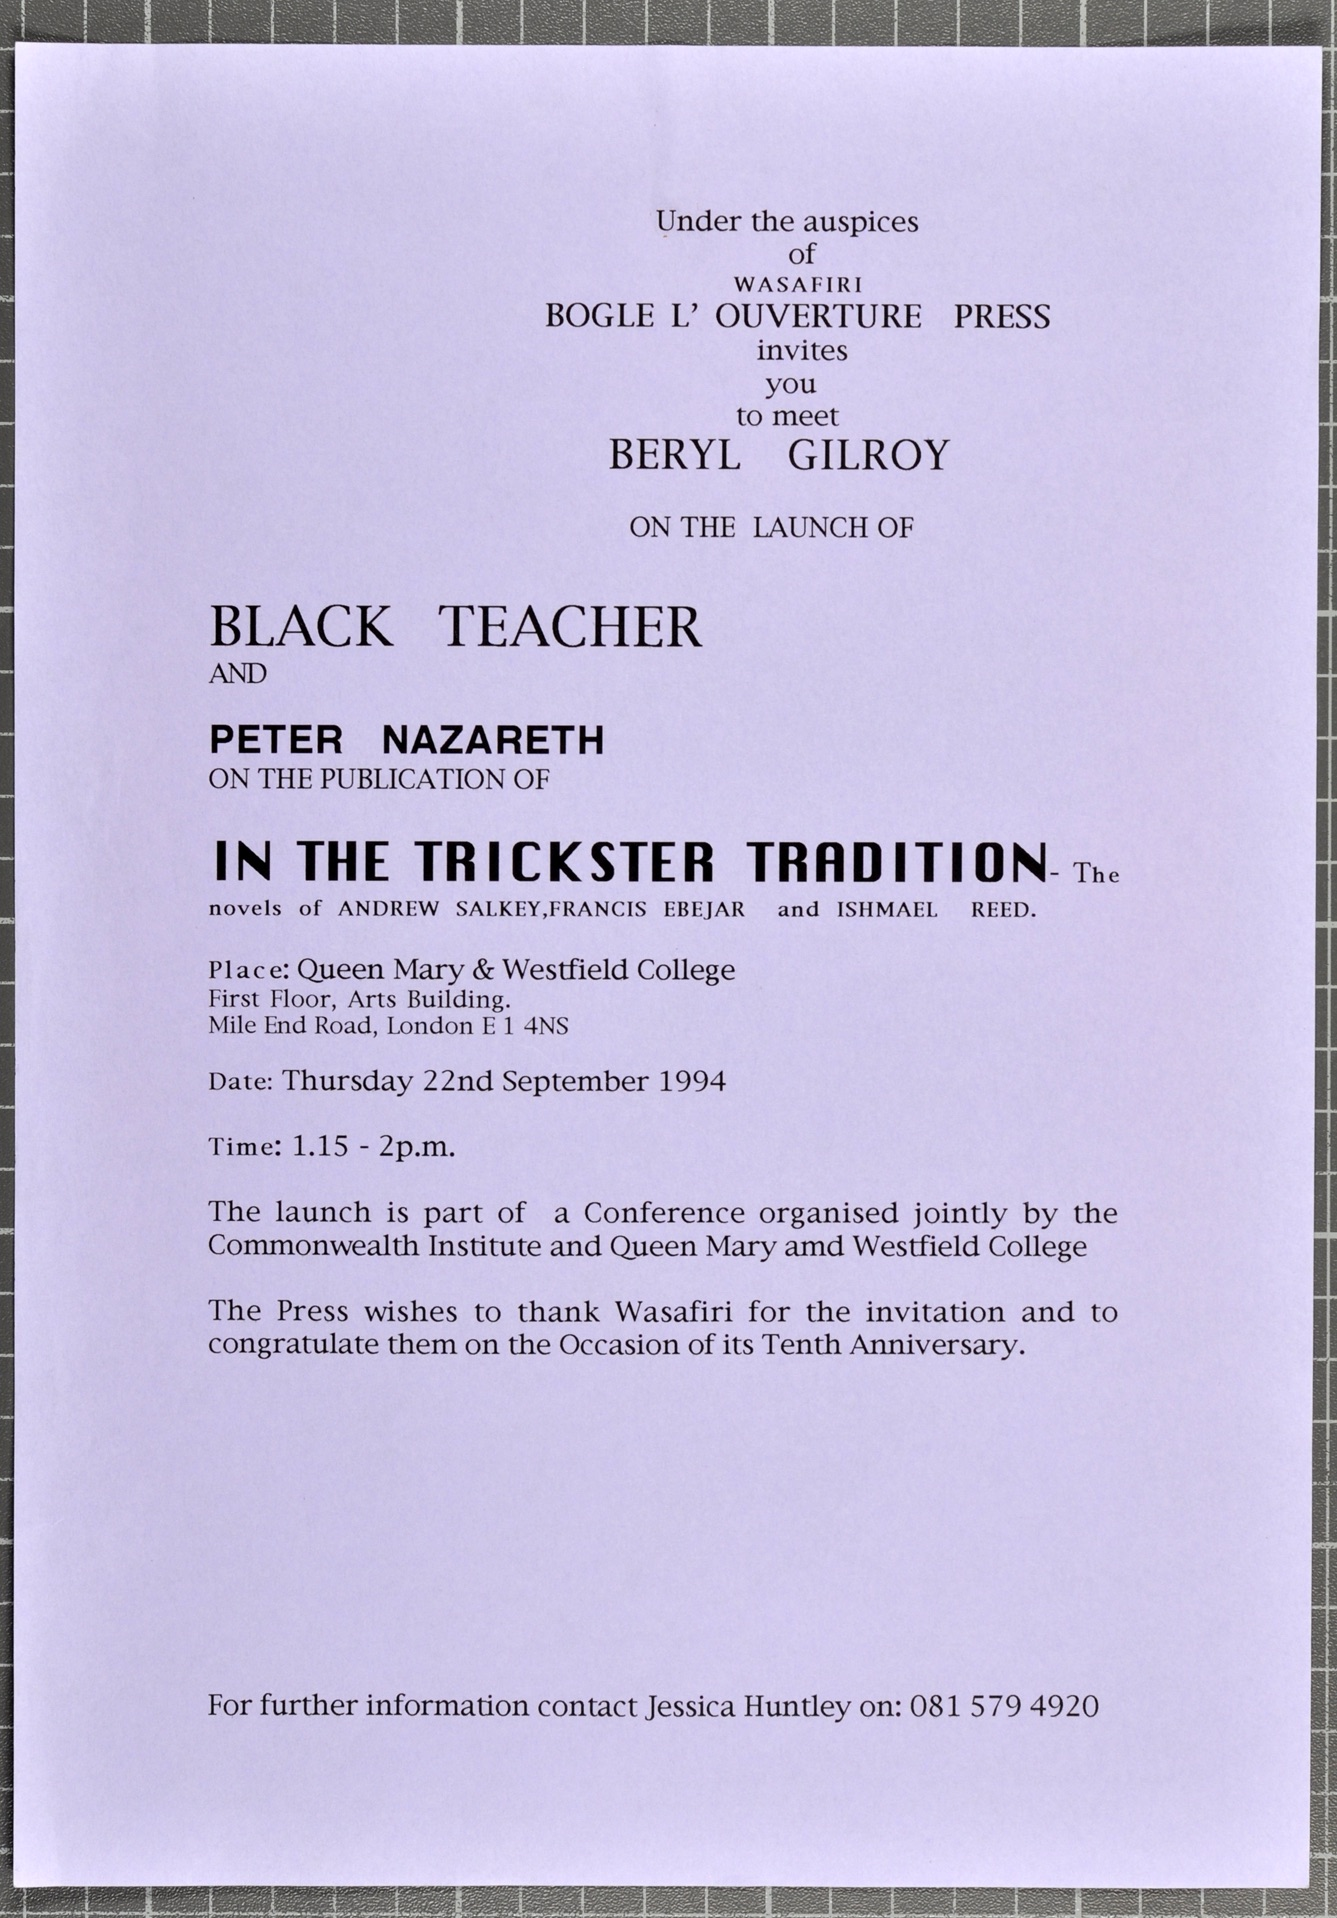 In the Trickster Tradition _ Black Teacher (book launch). 22nd Sept. 1994. Huntley Archives at Londo